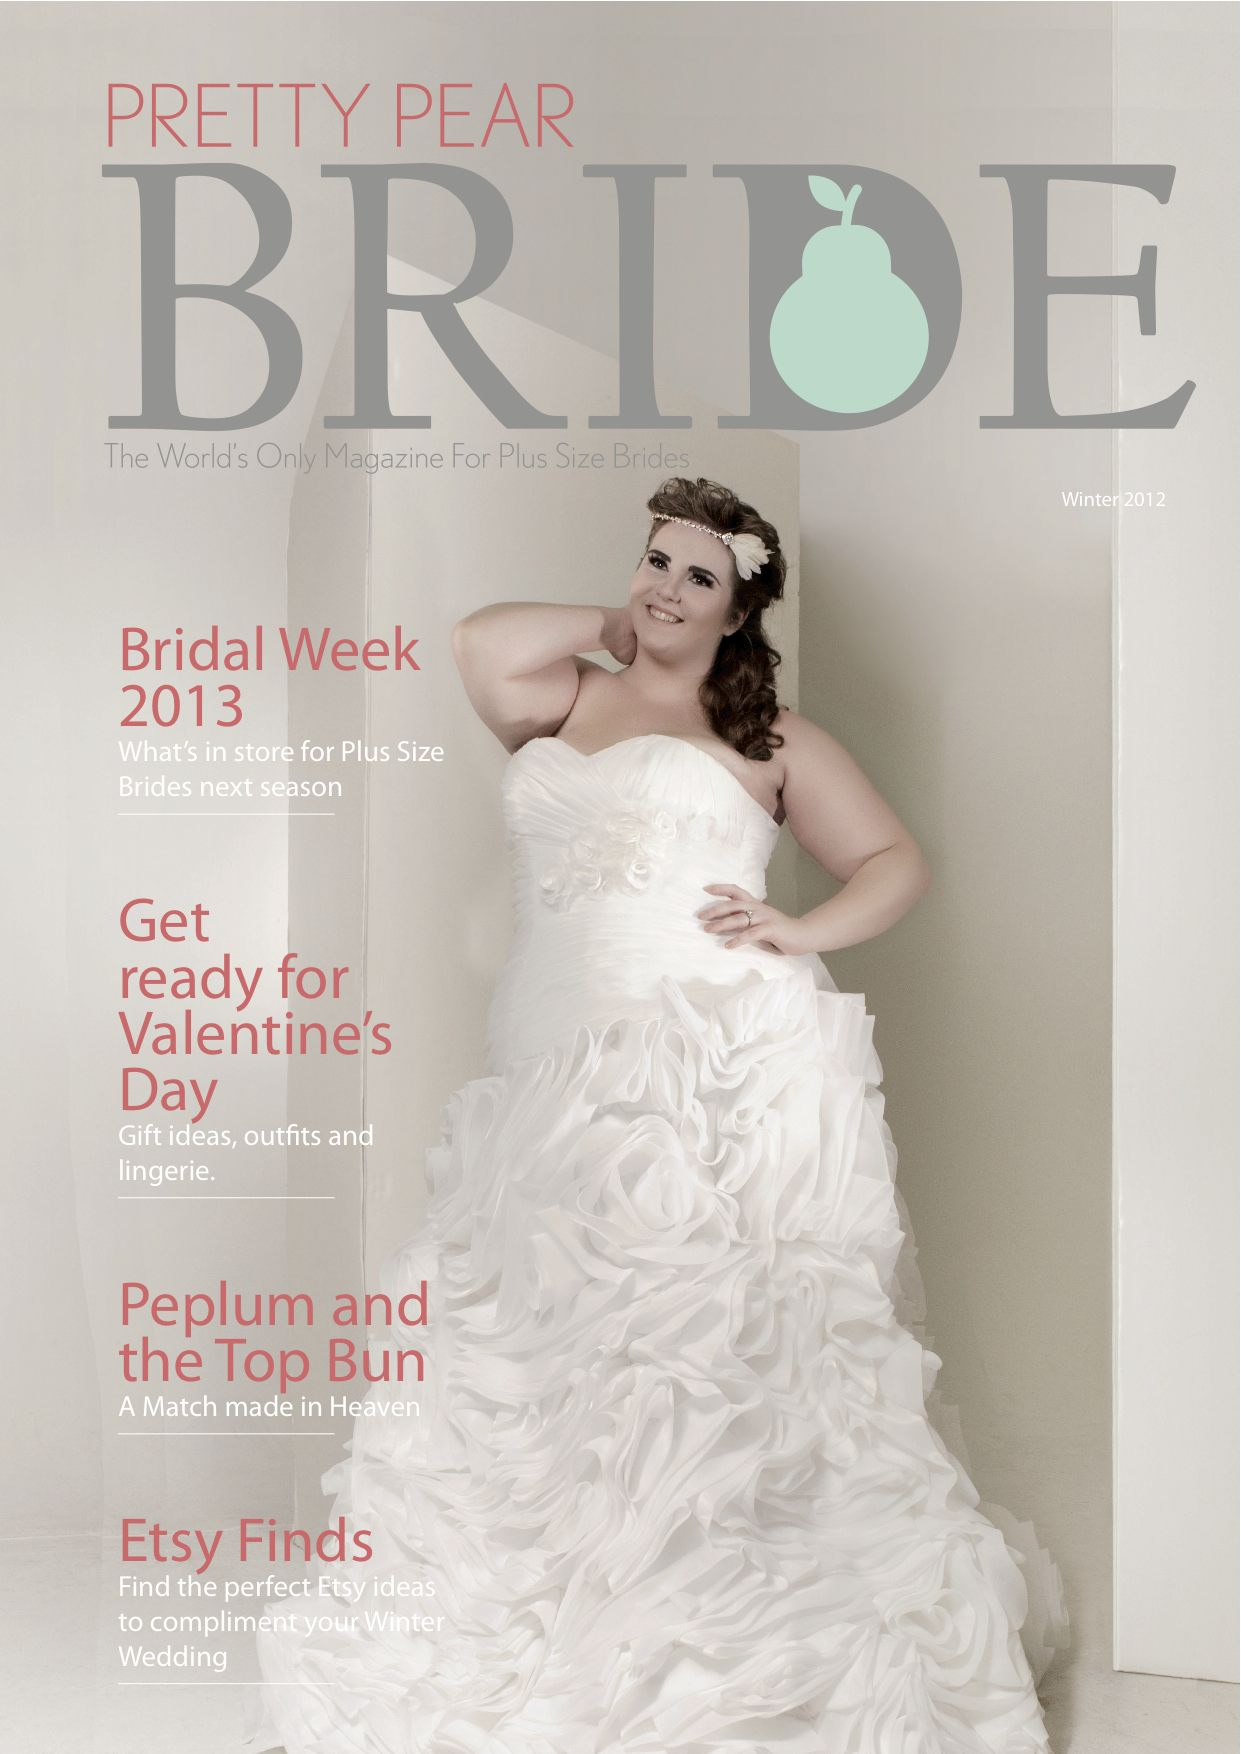 Pretty Pear Bride Spring 2013 Issue